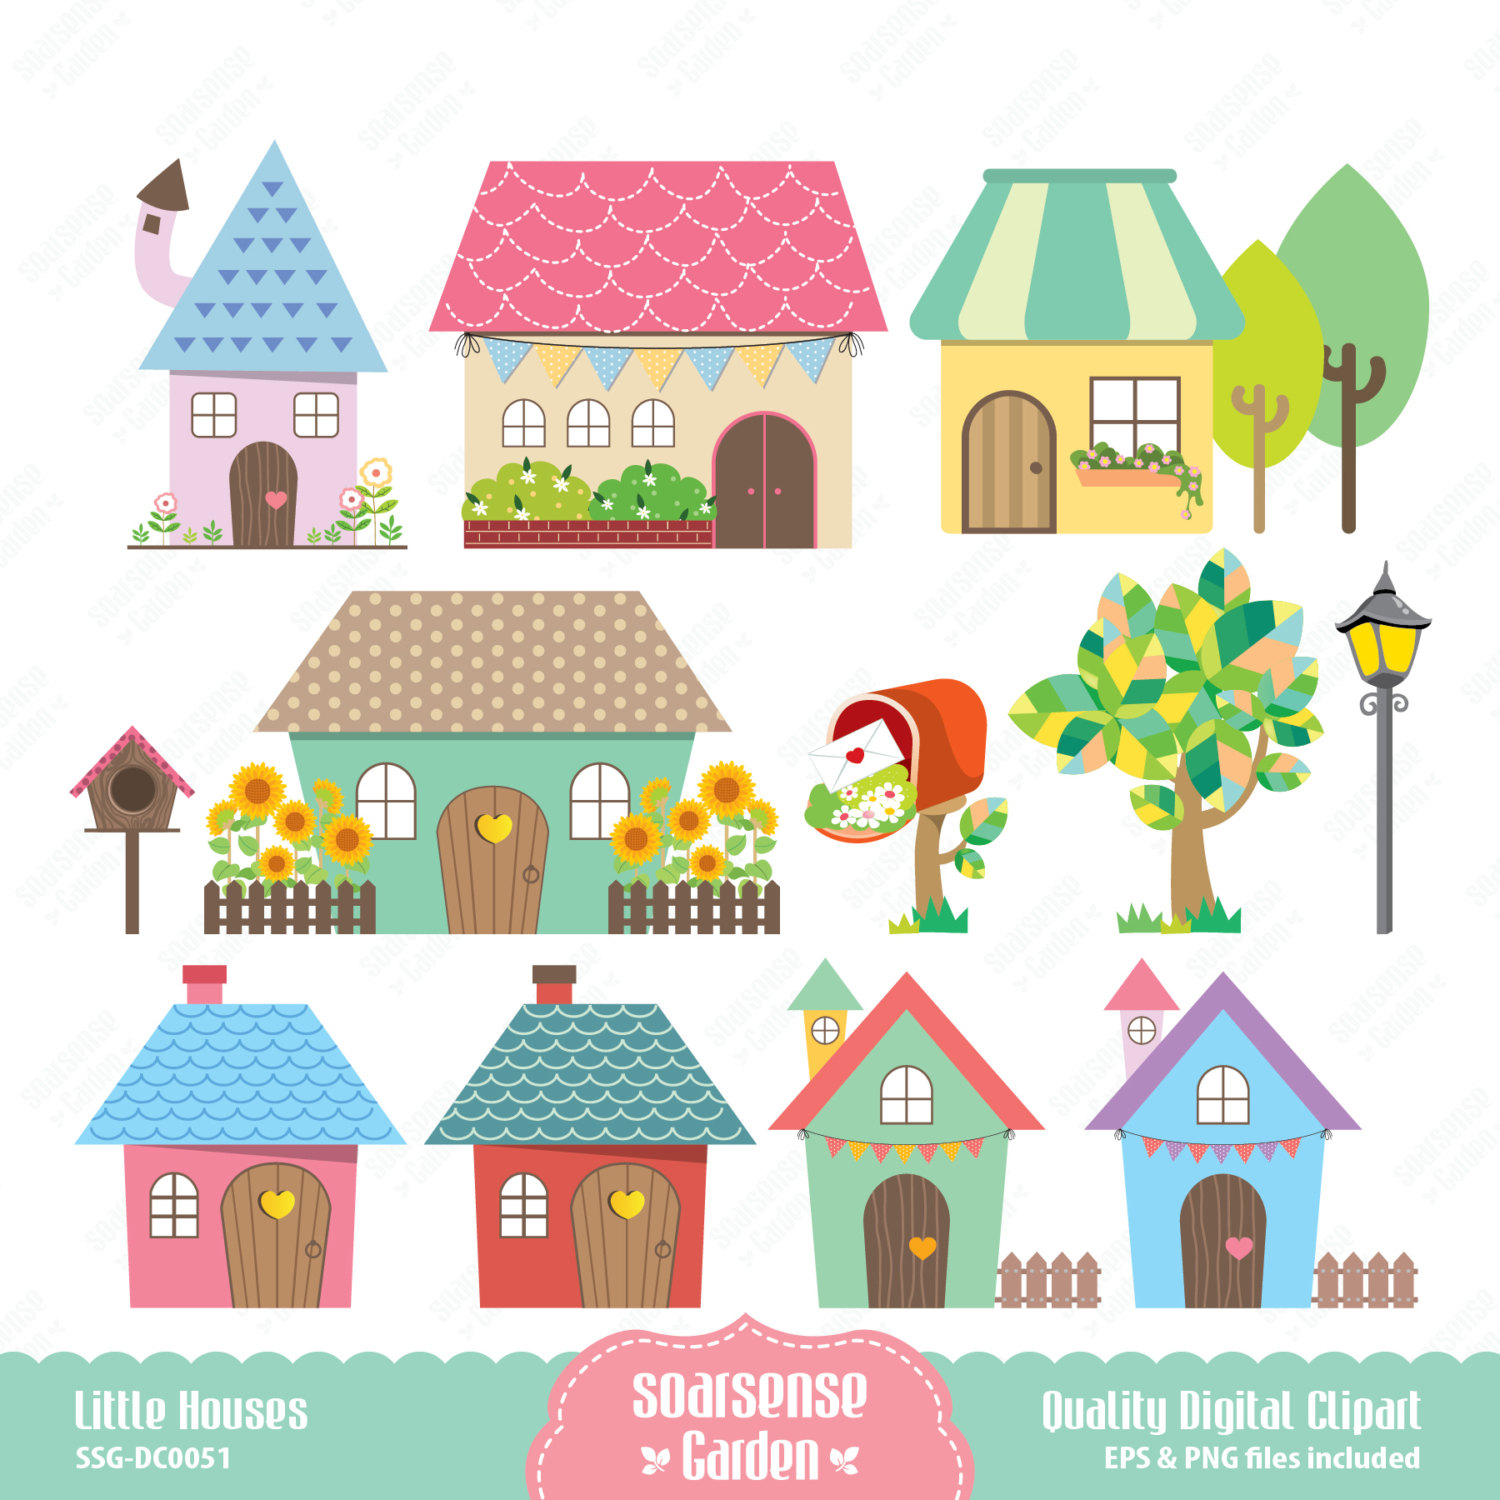 Little Houses Digital Clipart Home Clip Art February 08 2014 At 12